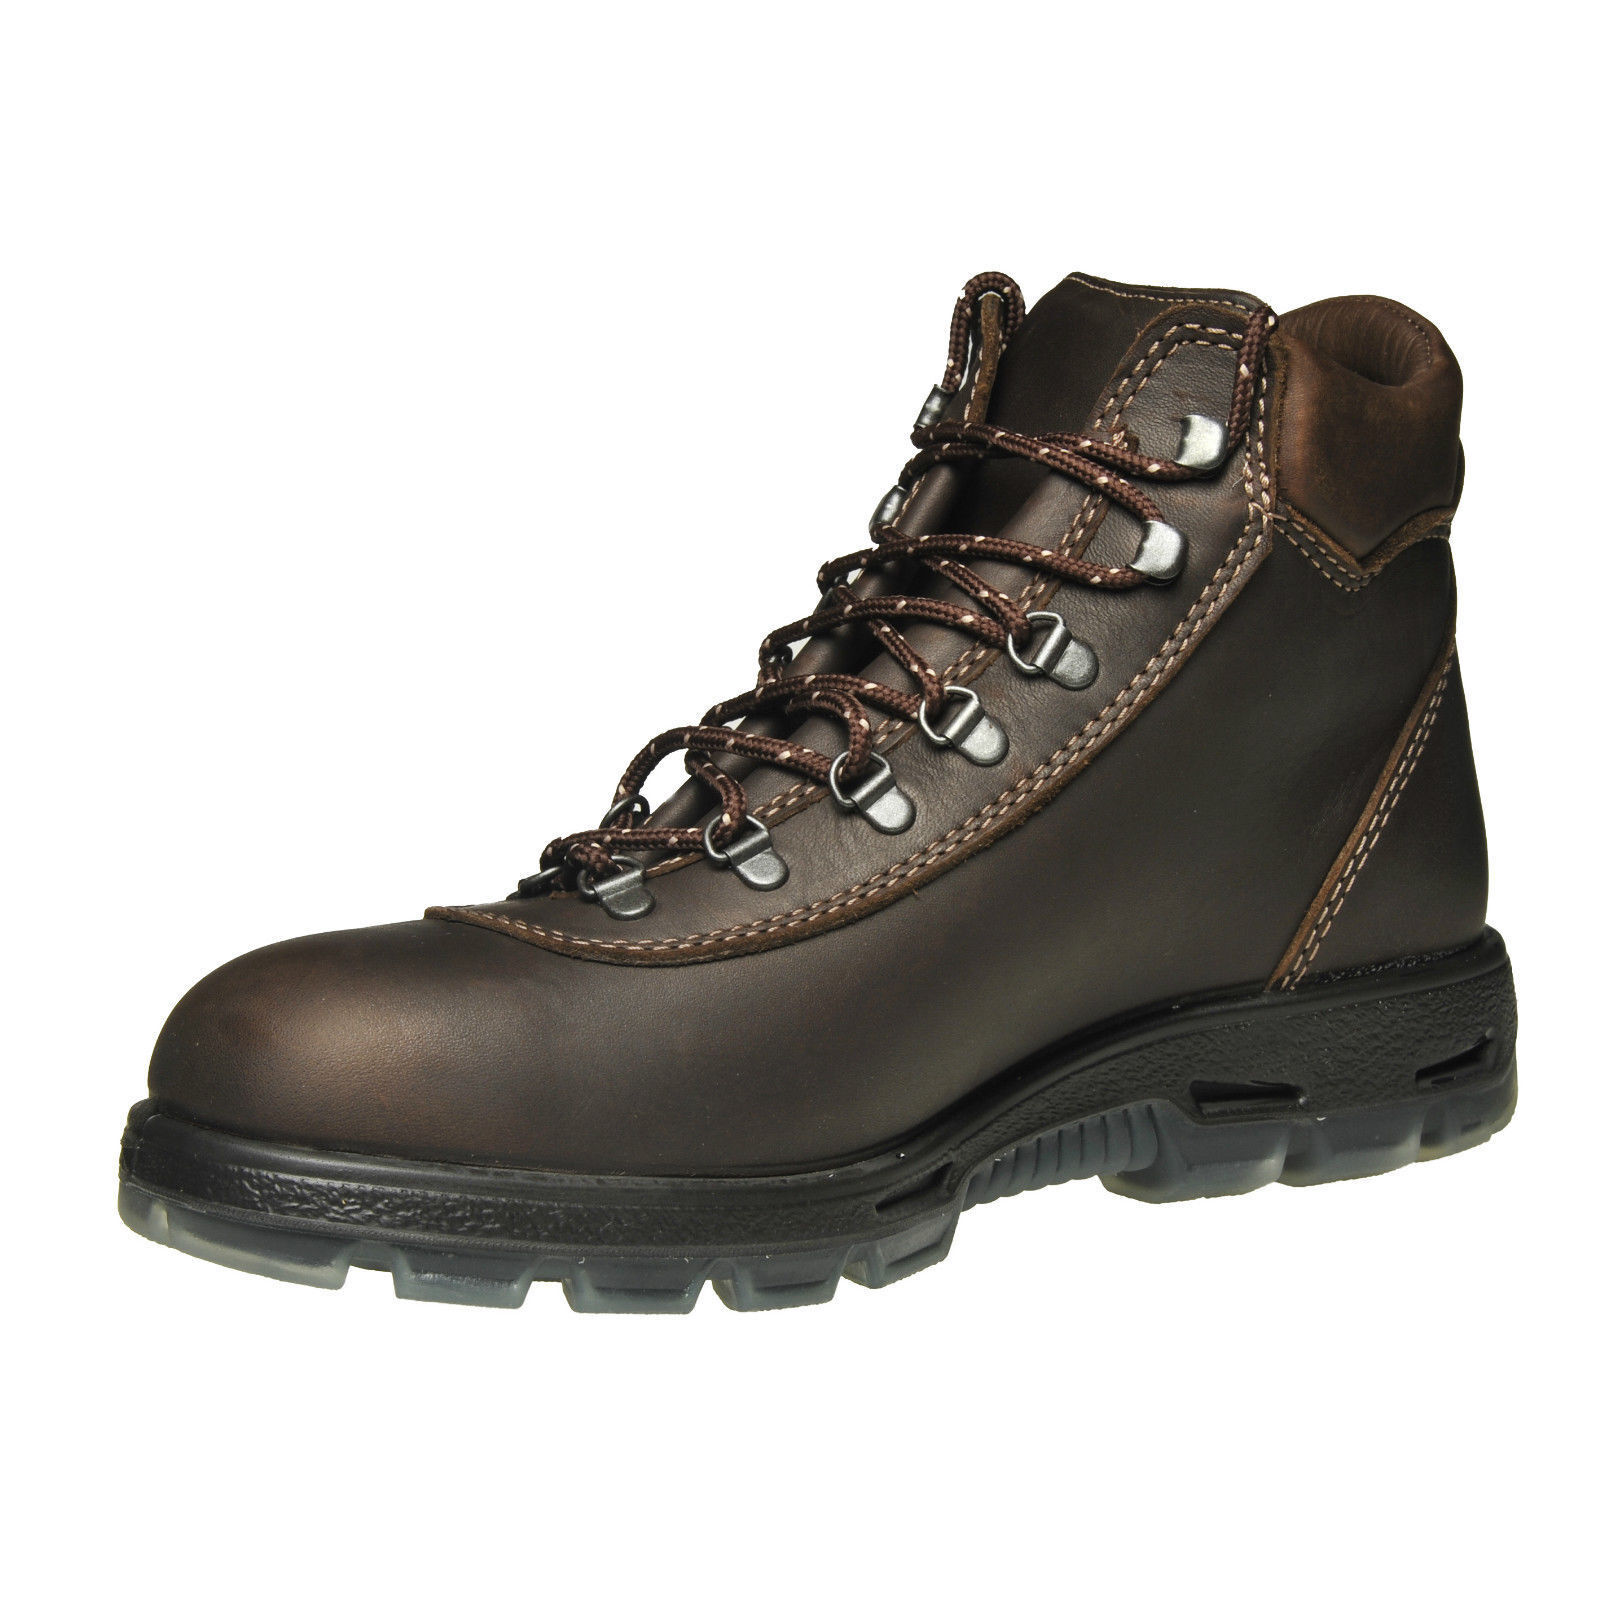 efe7cea74e4 Details about Redback UEPU Everest. Non Safety, Soft Toe, Work & Hiking  Boots. 'AUSSIE' MADE!$